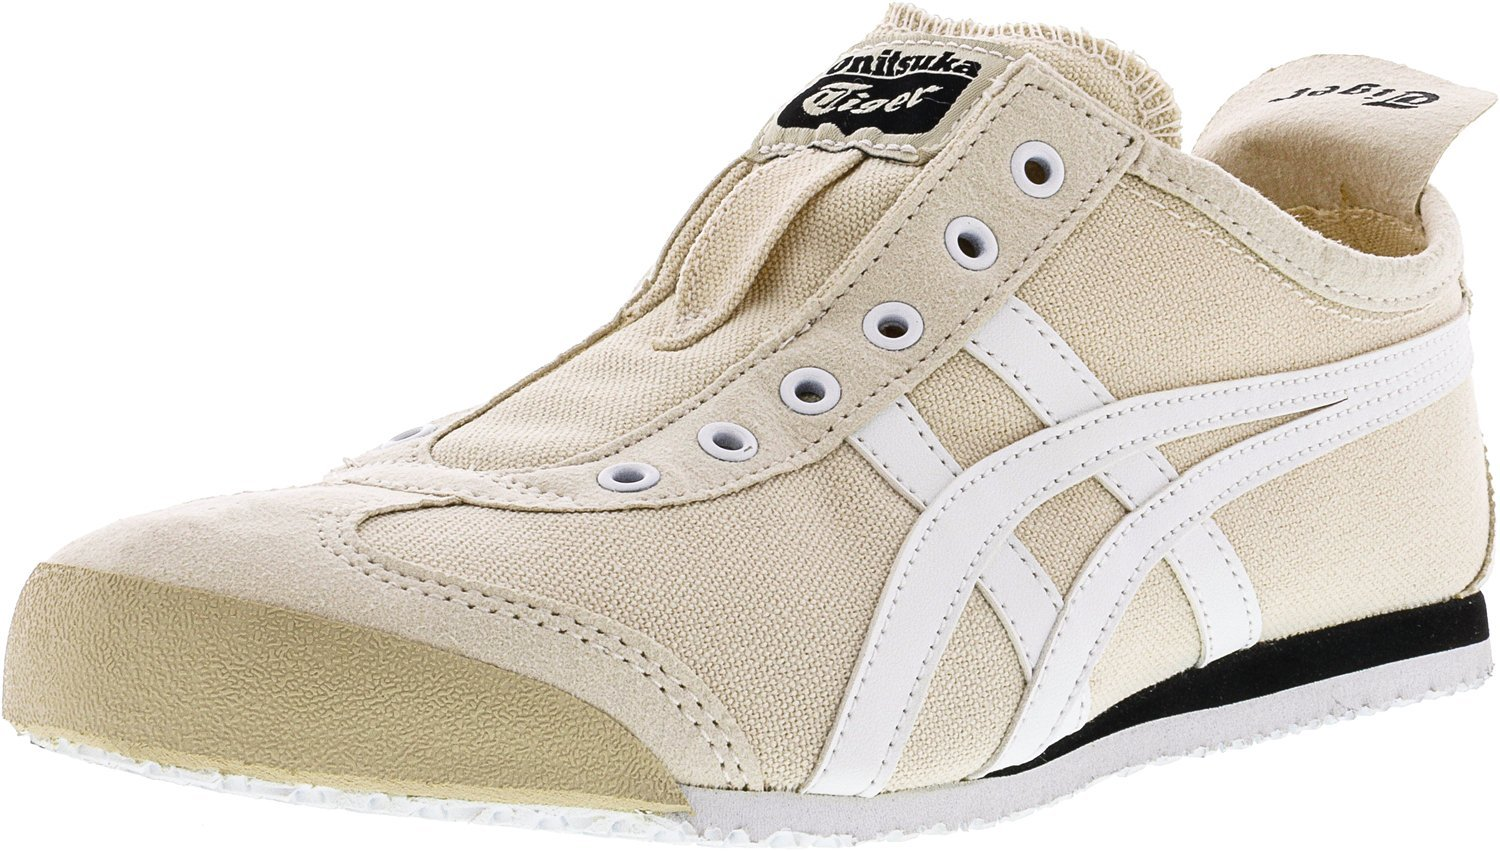 Onitsuka Tiger Mexico 66 Slip-On Classic Running Sneaker B01K39PX9A 9.5 M US Women / 8 M US Men|Birch/White